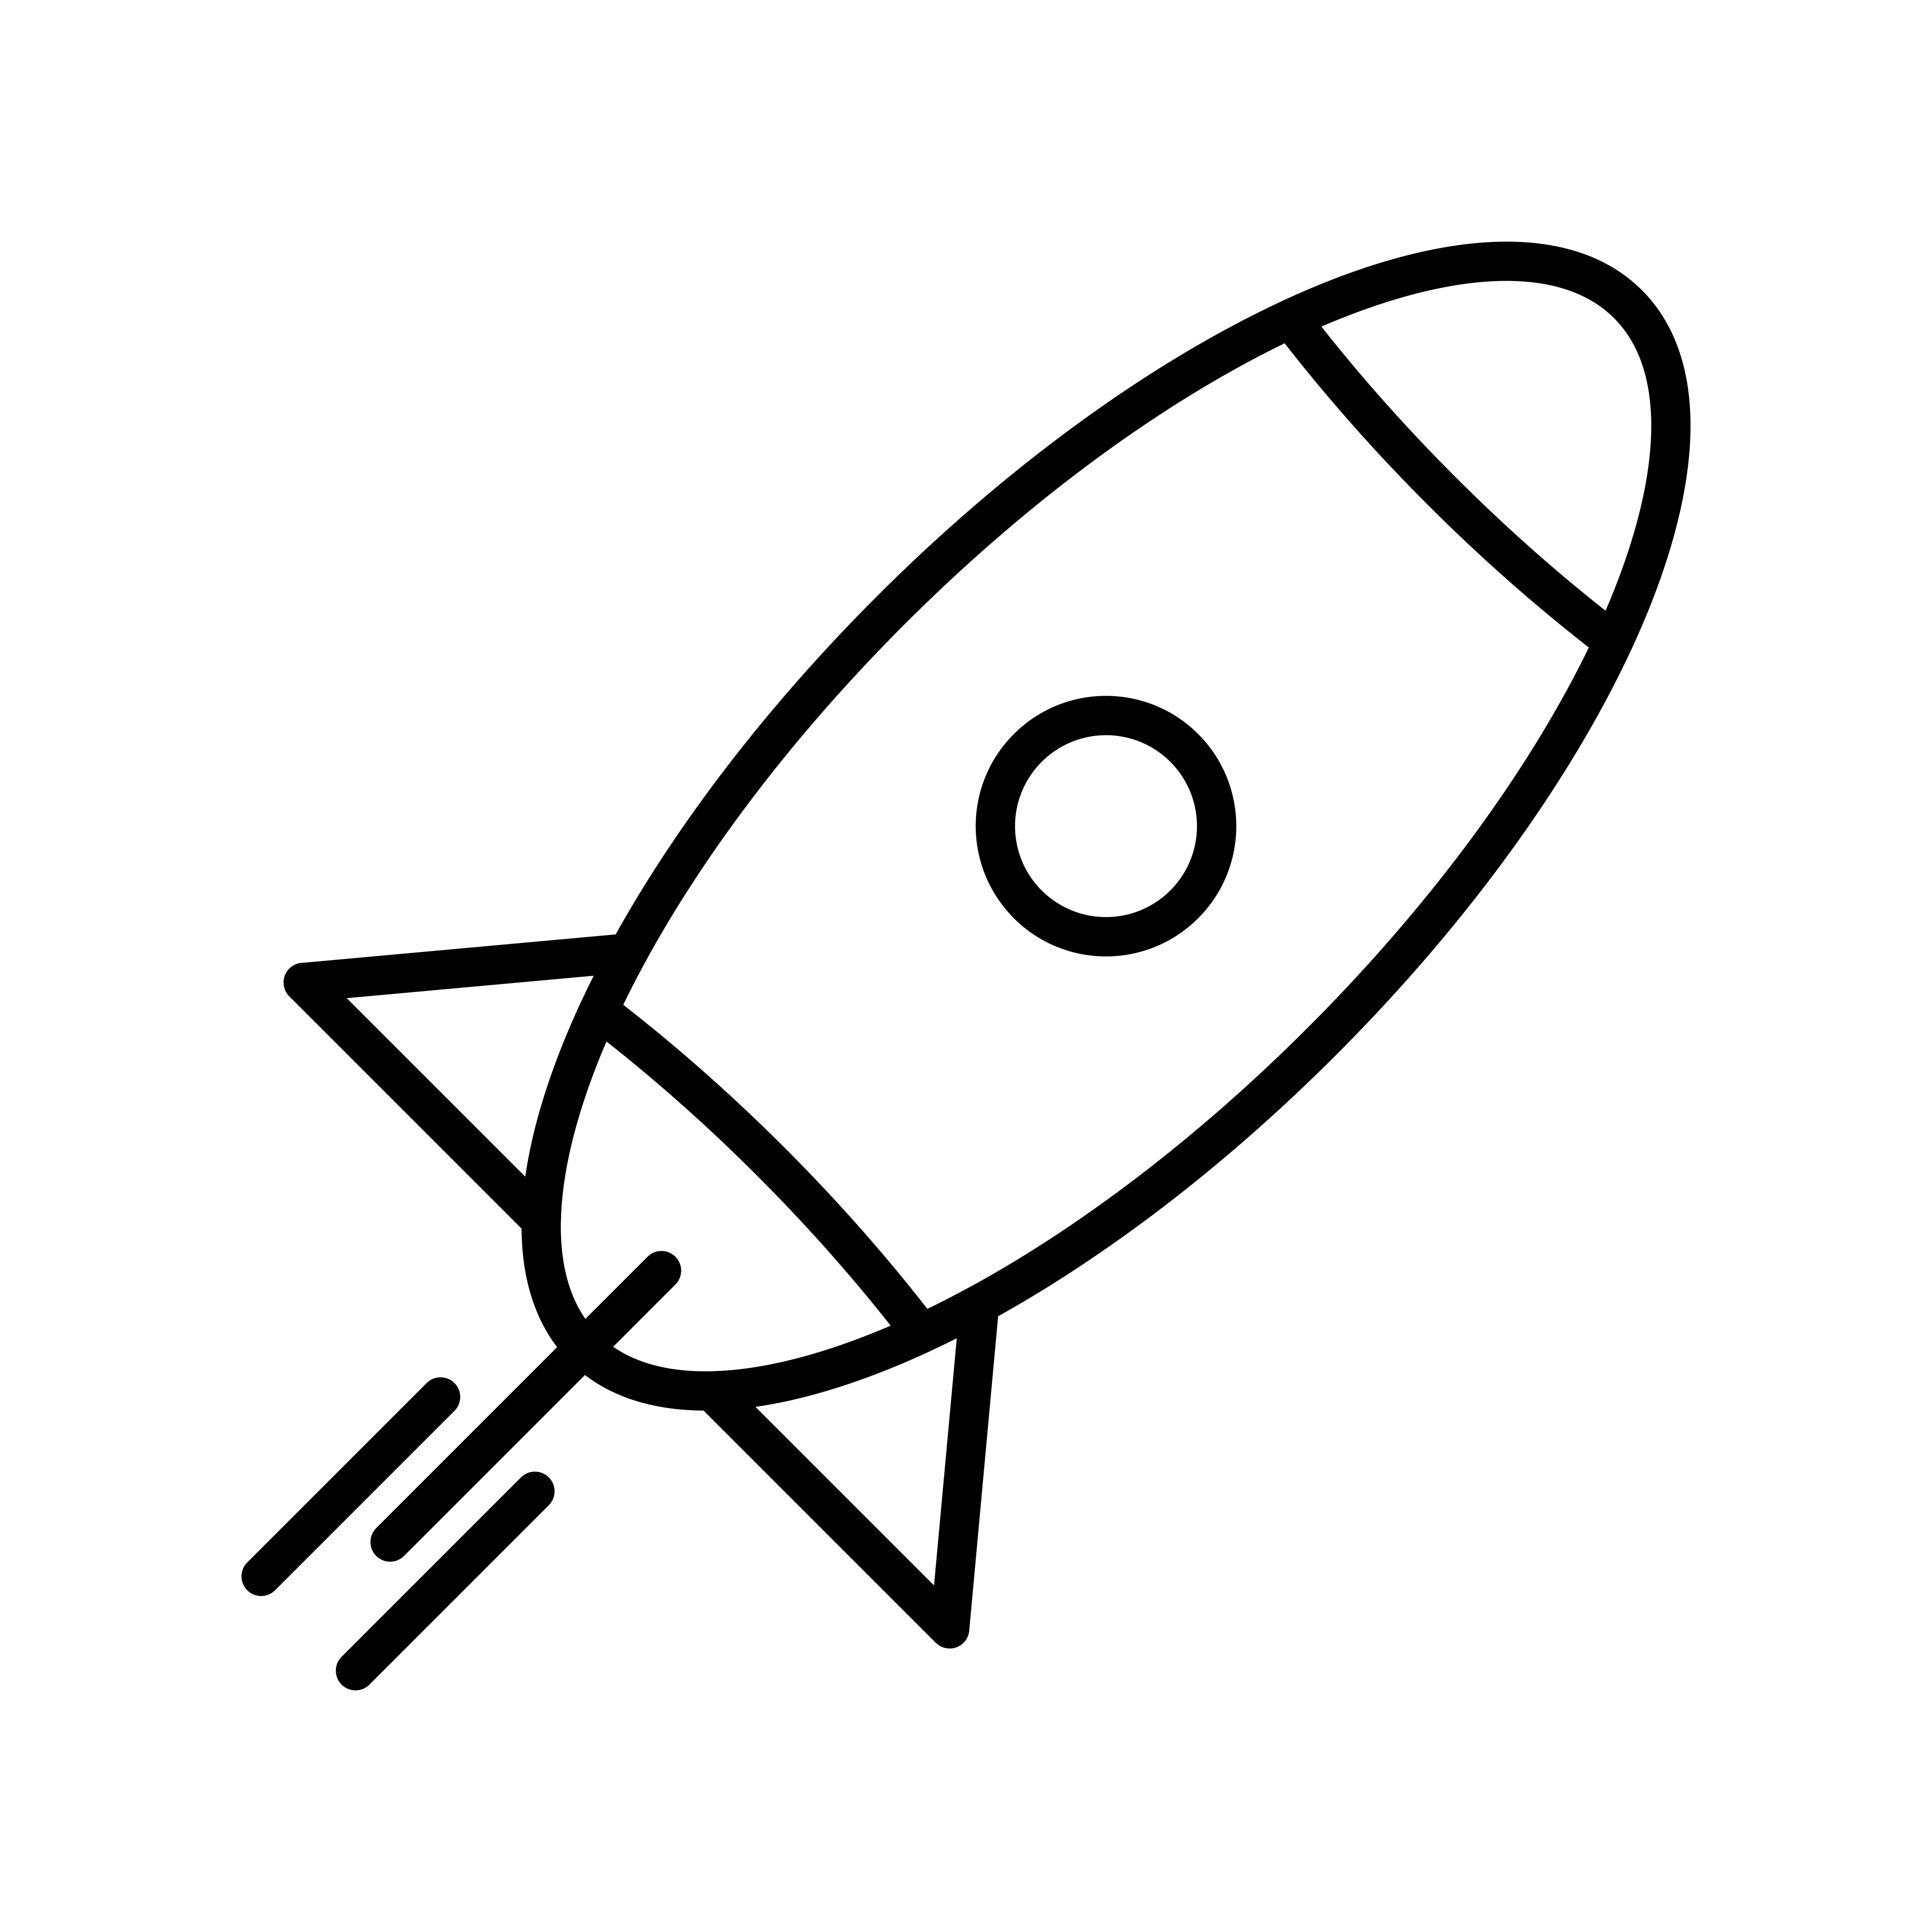 Rocket Line Black Icon